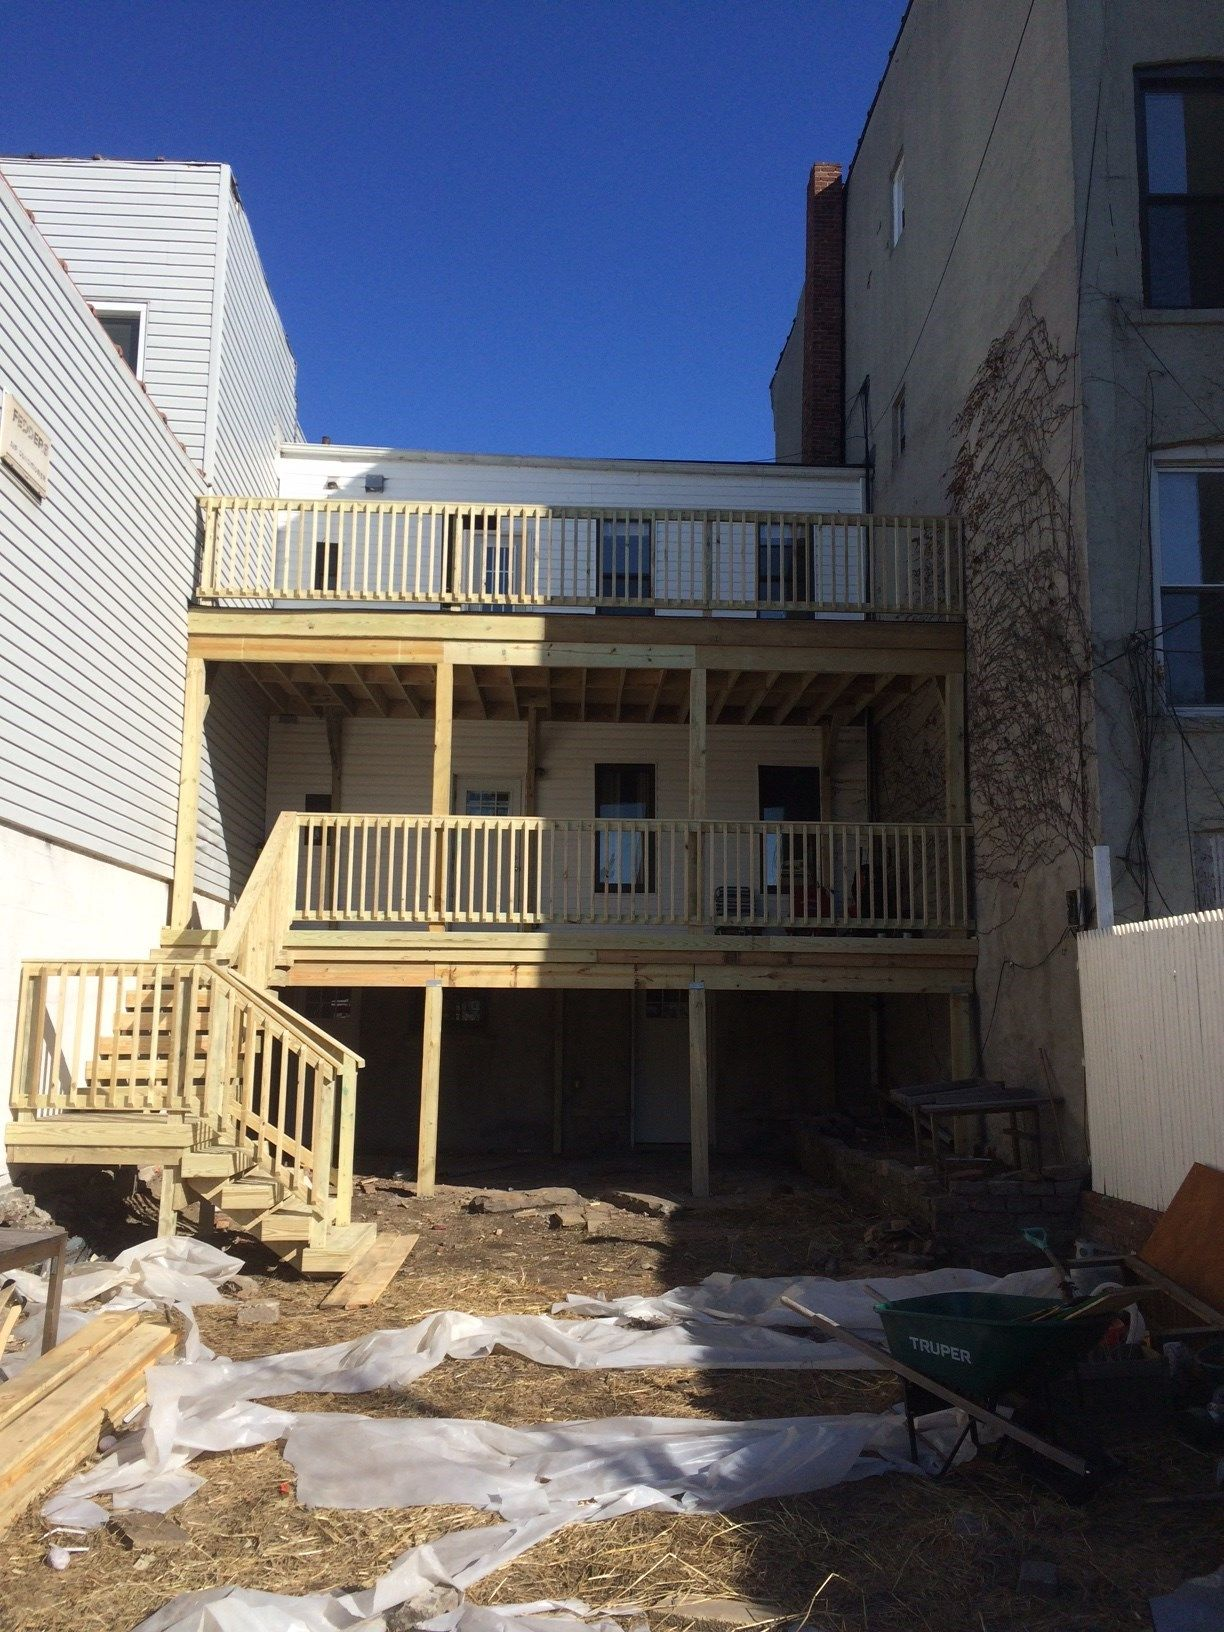 Deck in Brooklyn, NY 11222 - Picture 3983